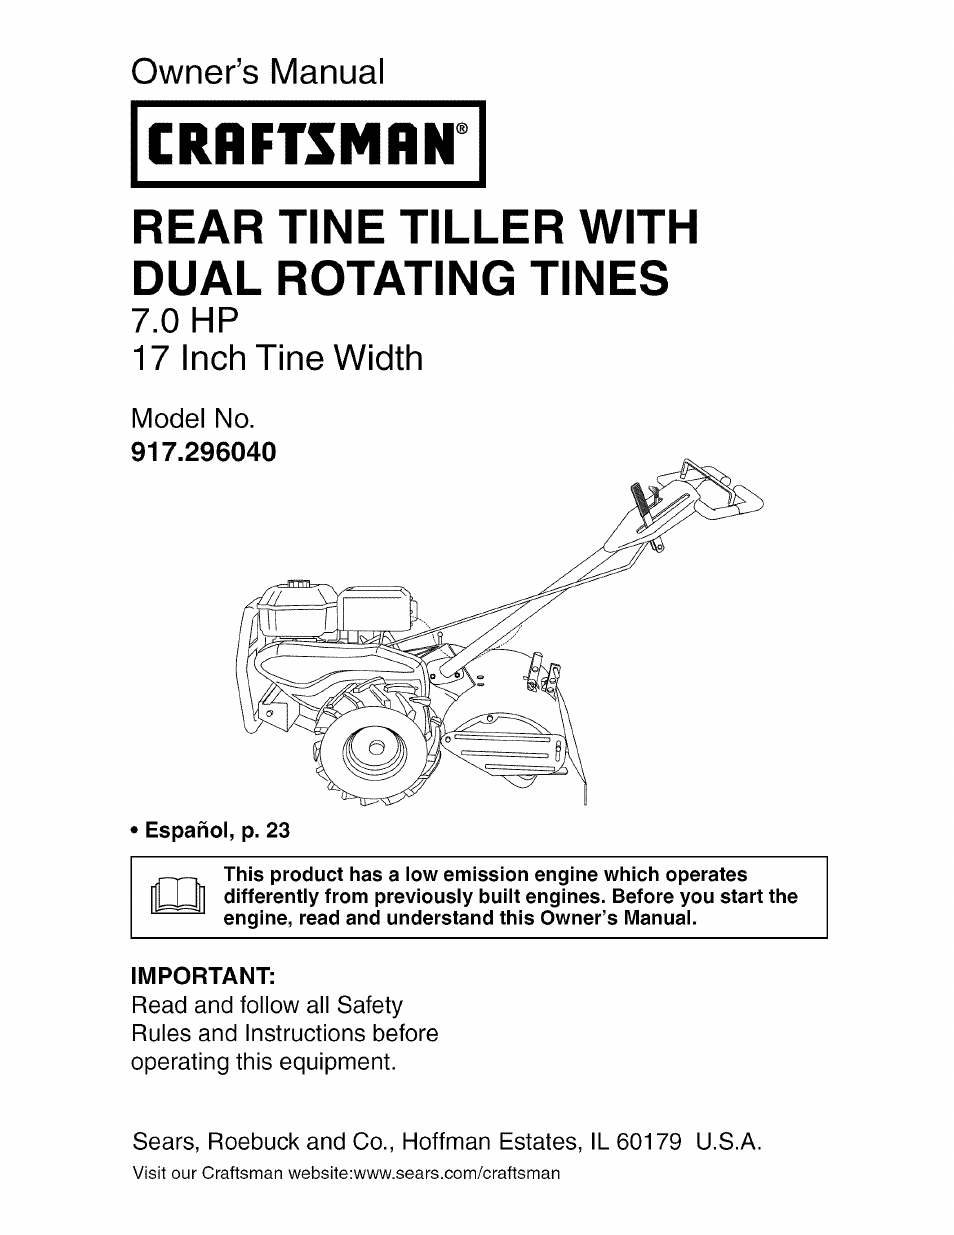 Craftsman 5 Hp 24 Tiller Manual : Craftsman user manual pages